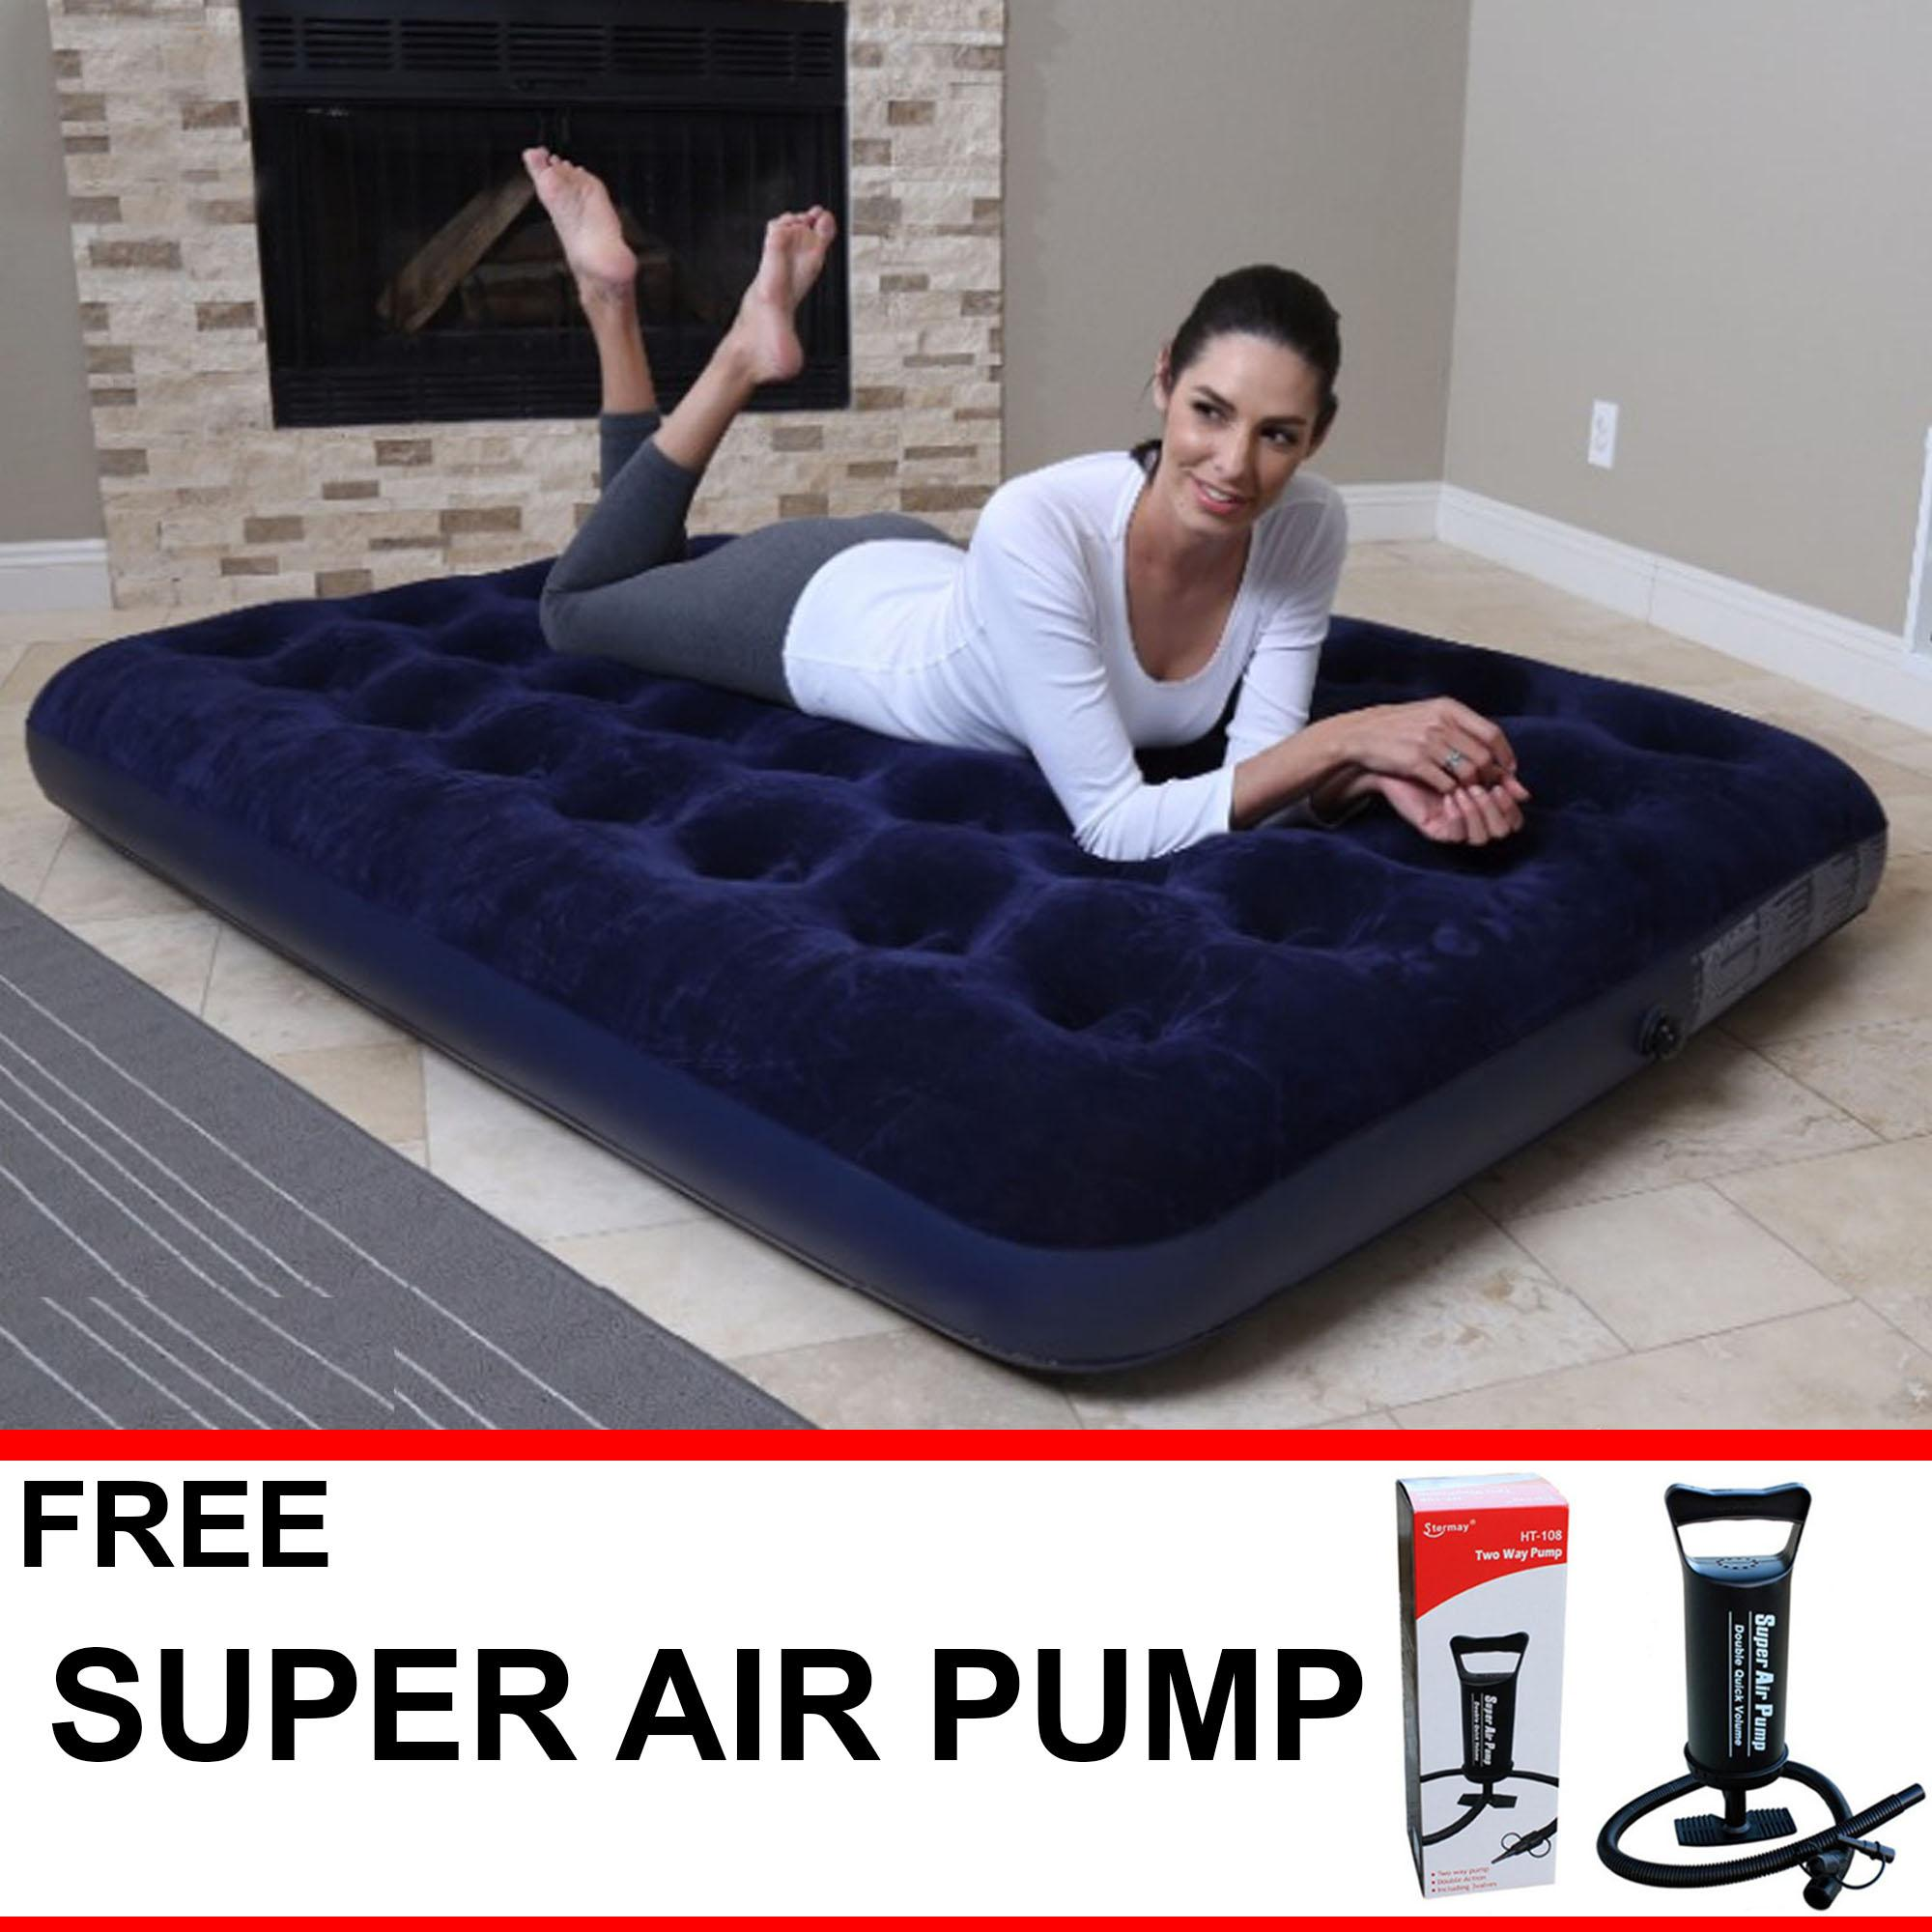 Bestway Inflatable Camping Air Bed Double Size Free Super Air Pump By Vtow Cp Gadget.